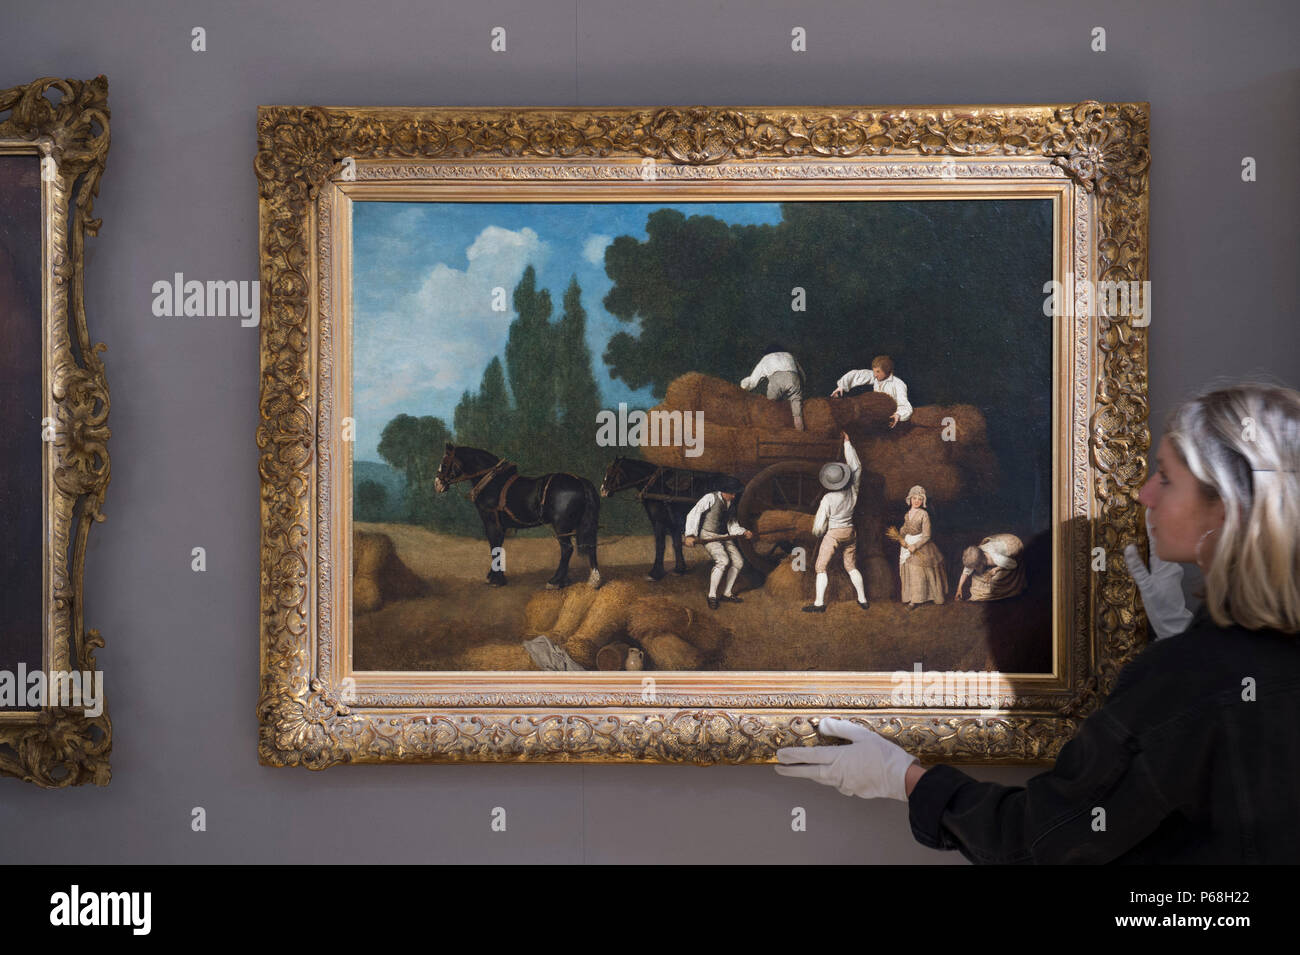 Bonhams New Bond Street, London, UK. 29 June, 2018. Harvesting, by George Stubbs (1724-1806) and estimated at £350,000-450,000 in the Old Masters sale preview. Painted in the early 1780s, the work encapsulates Stubbs lyrical realism. The sale takes place on Wednesday 4 July 2018 at 2pm. Credit: Malcolm Park/Alamy Live News. - Stock Image